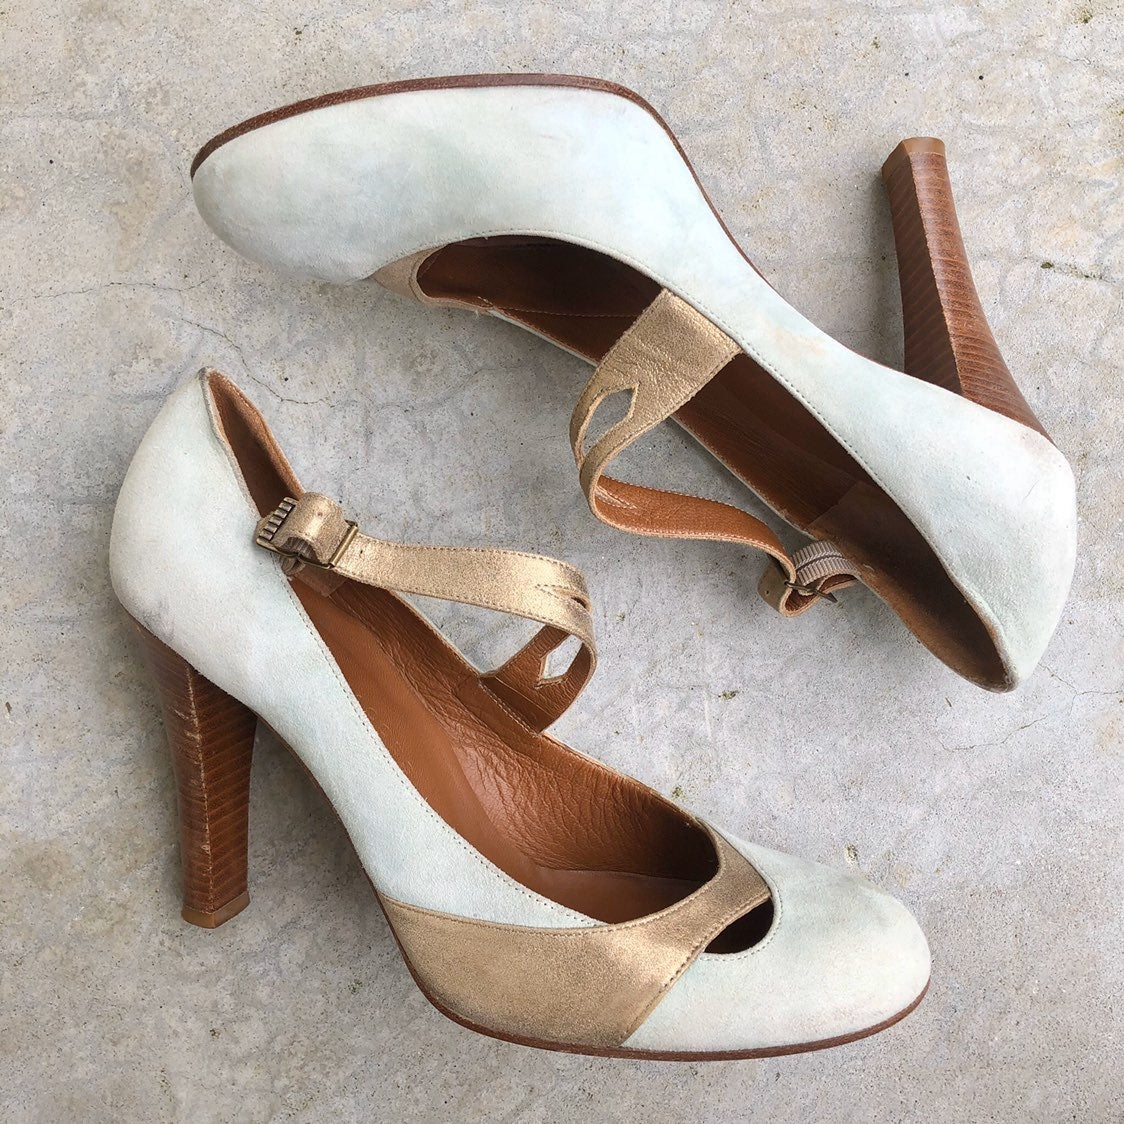 9.5 Marc Jacobs suede mary janes pumps